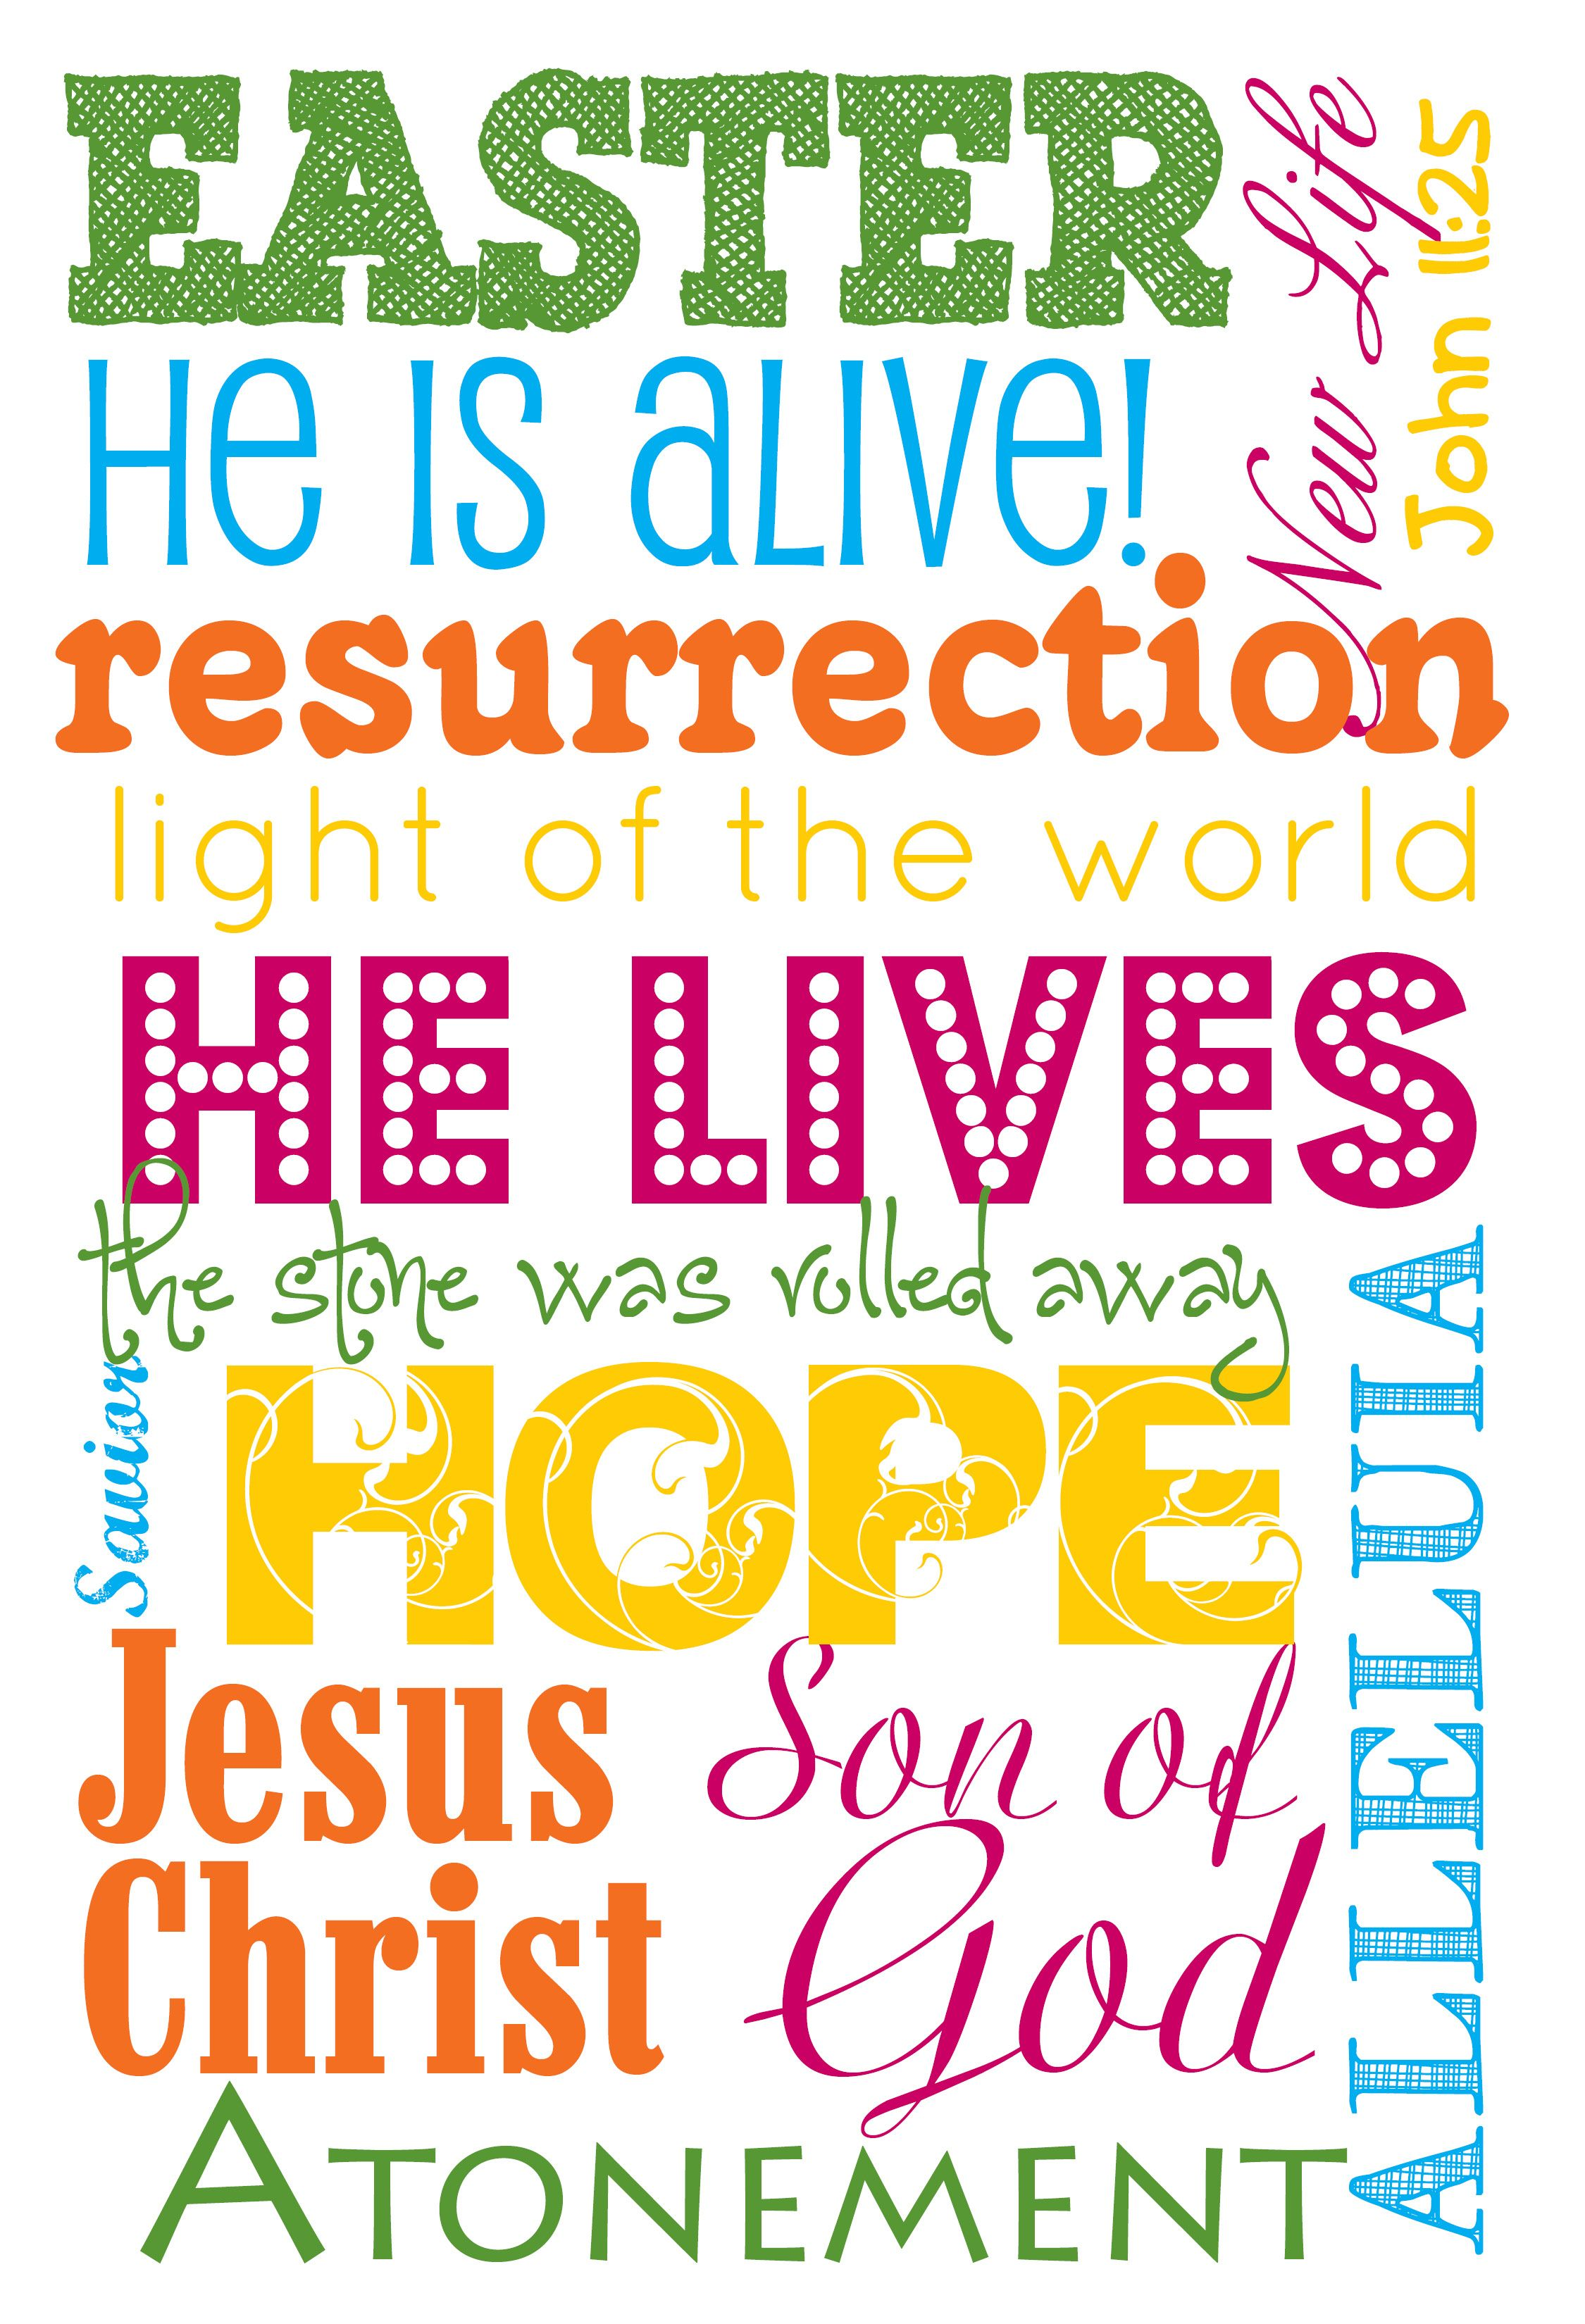 Easter Subway Art (With images) | Easter poster, Easter ...